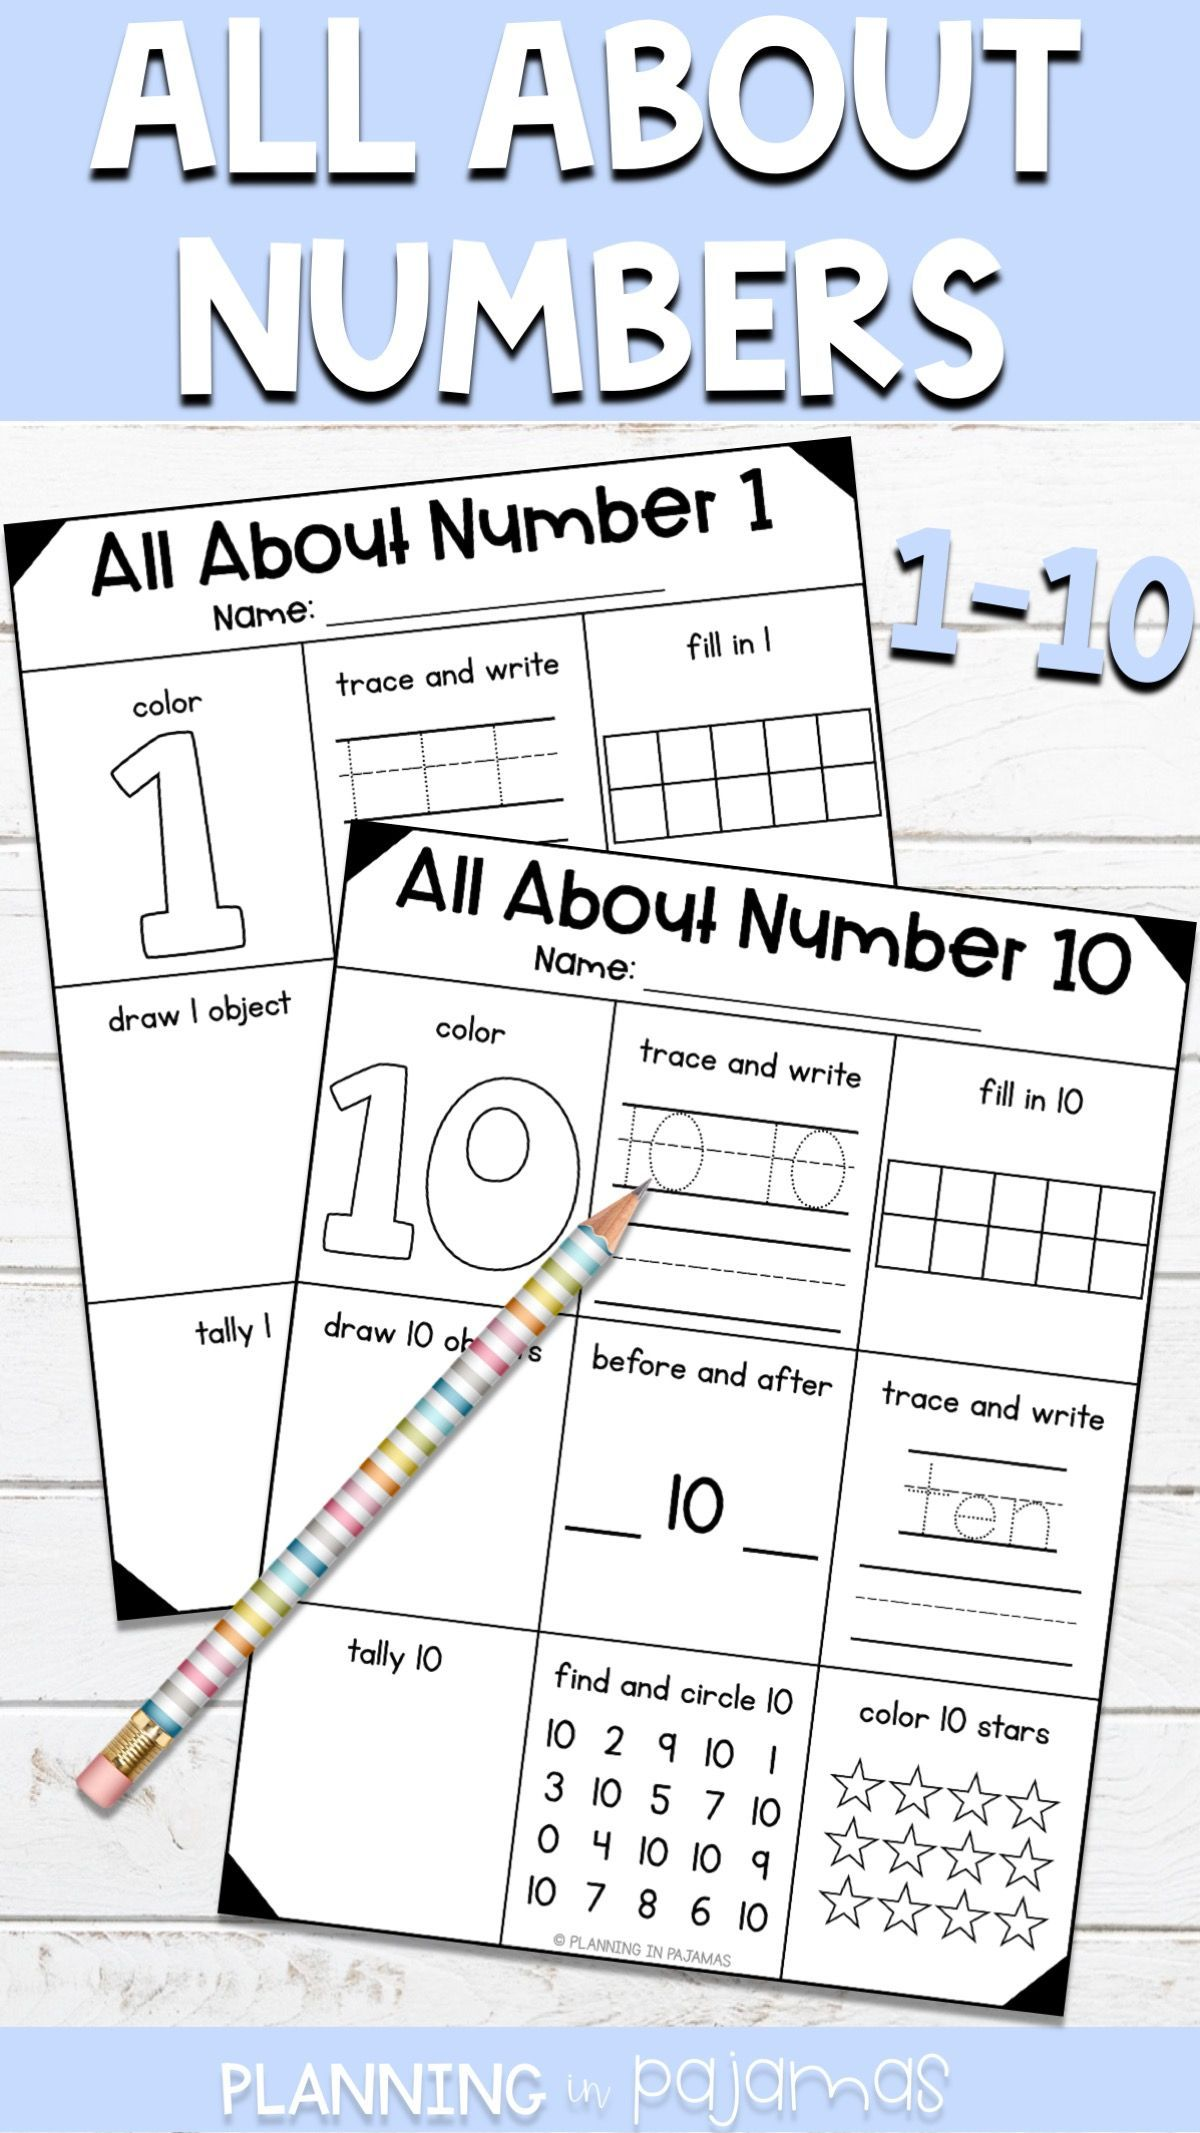 Practice Number Representations With These Math Worksheets